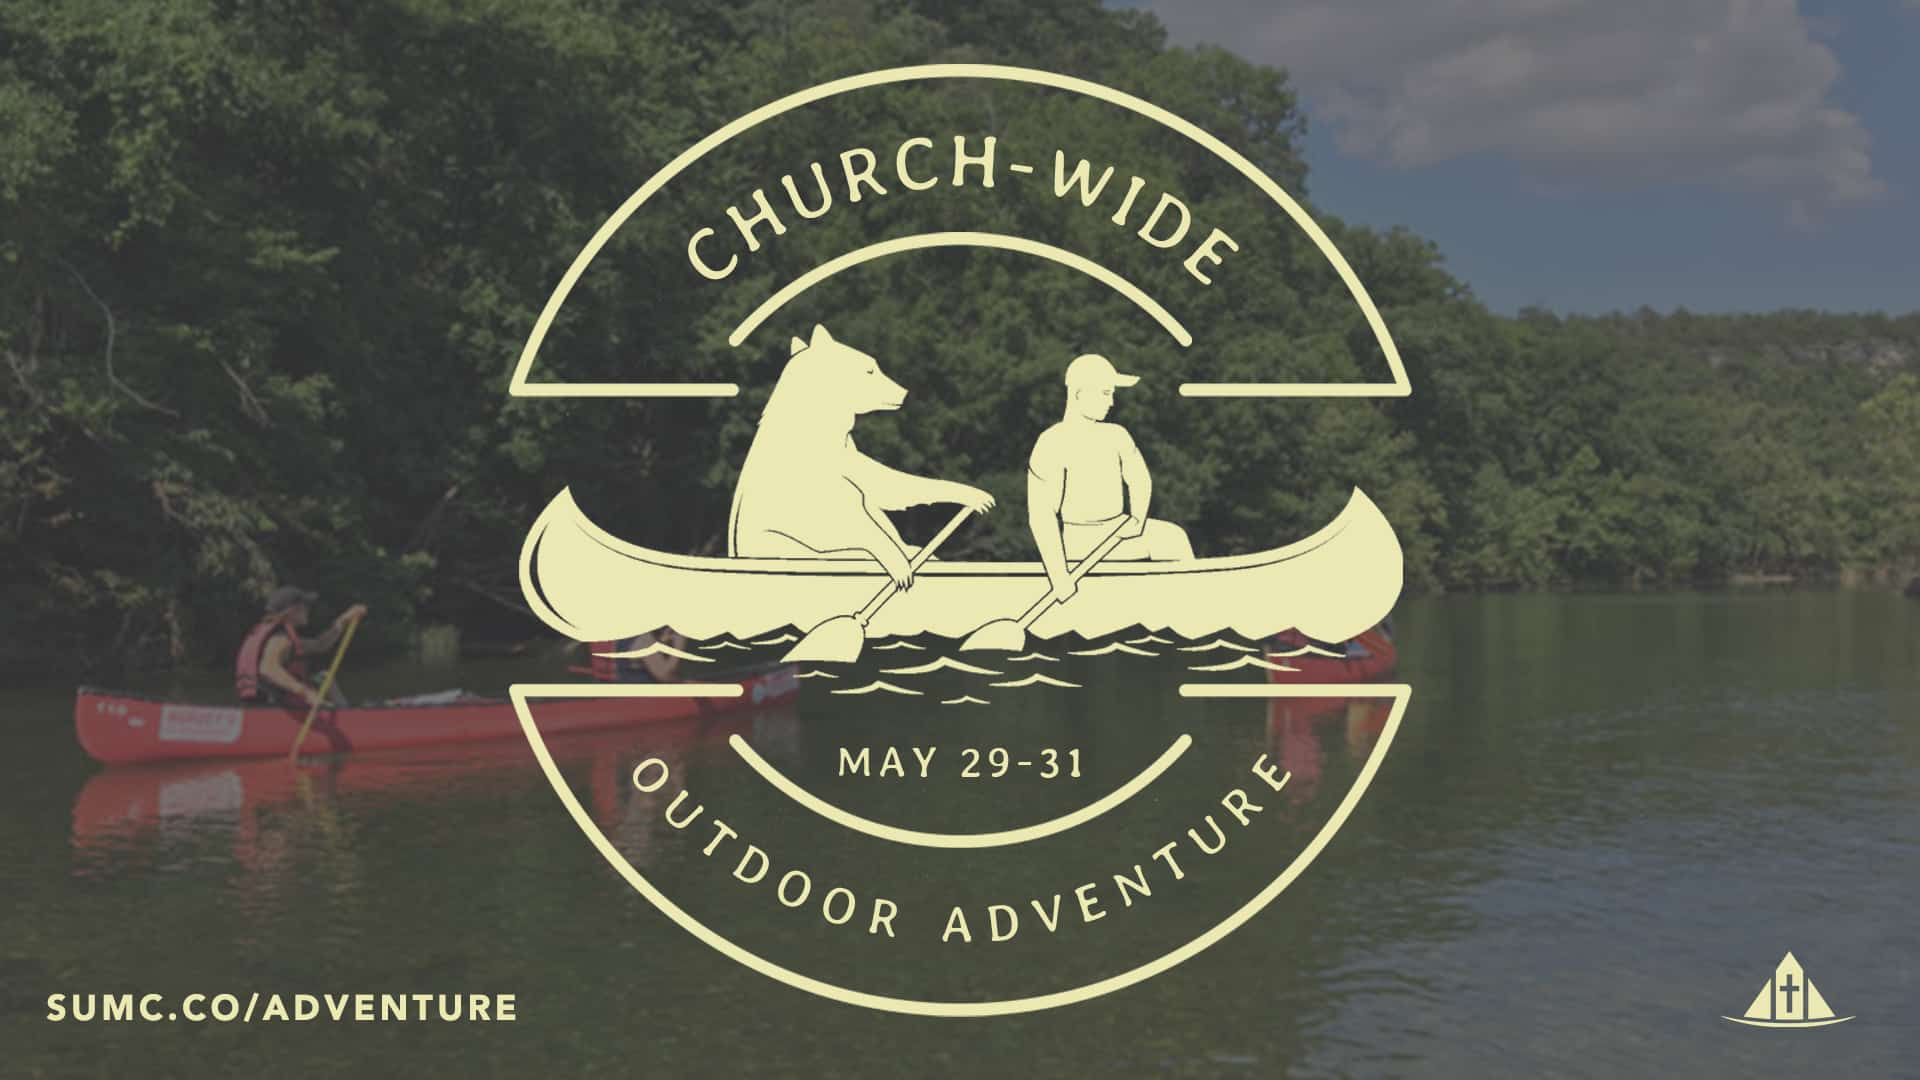 Promotional Graphic for Outdoor Adventure